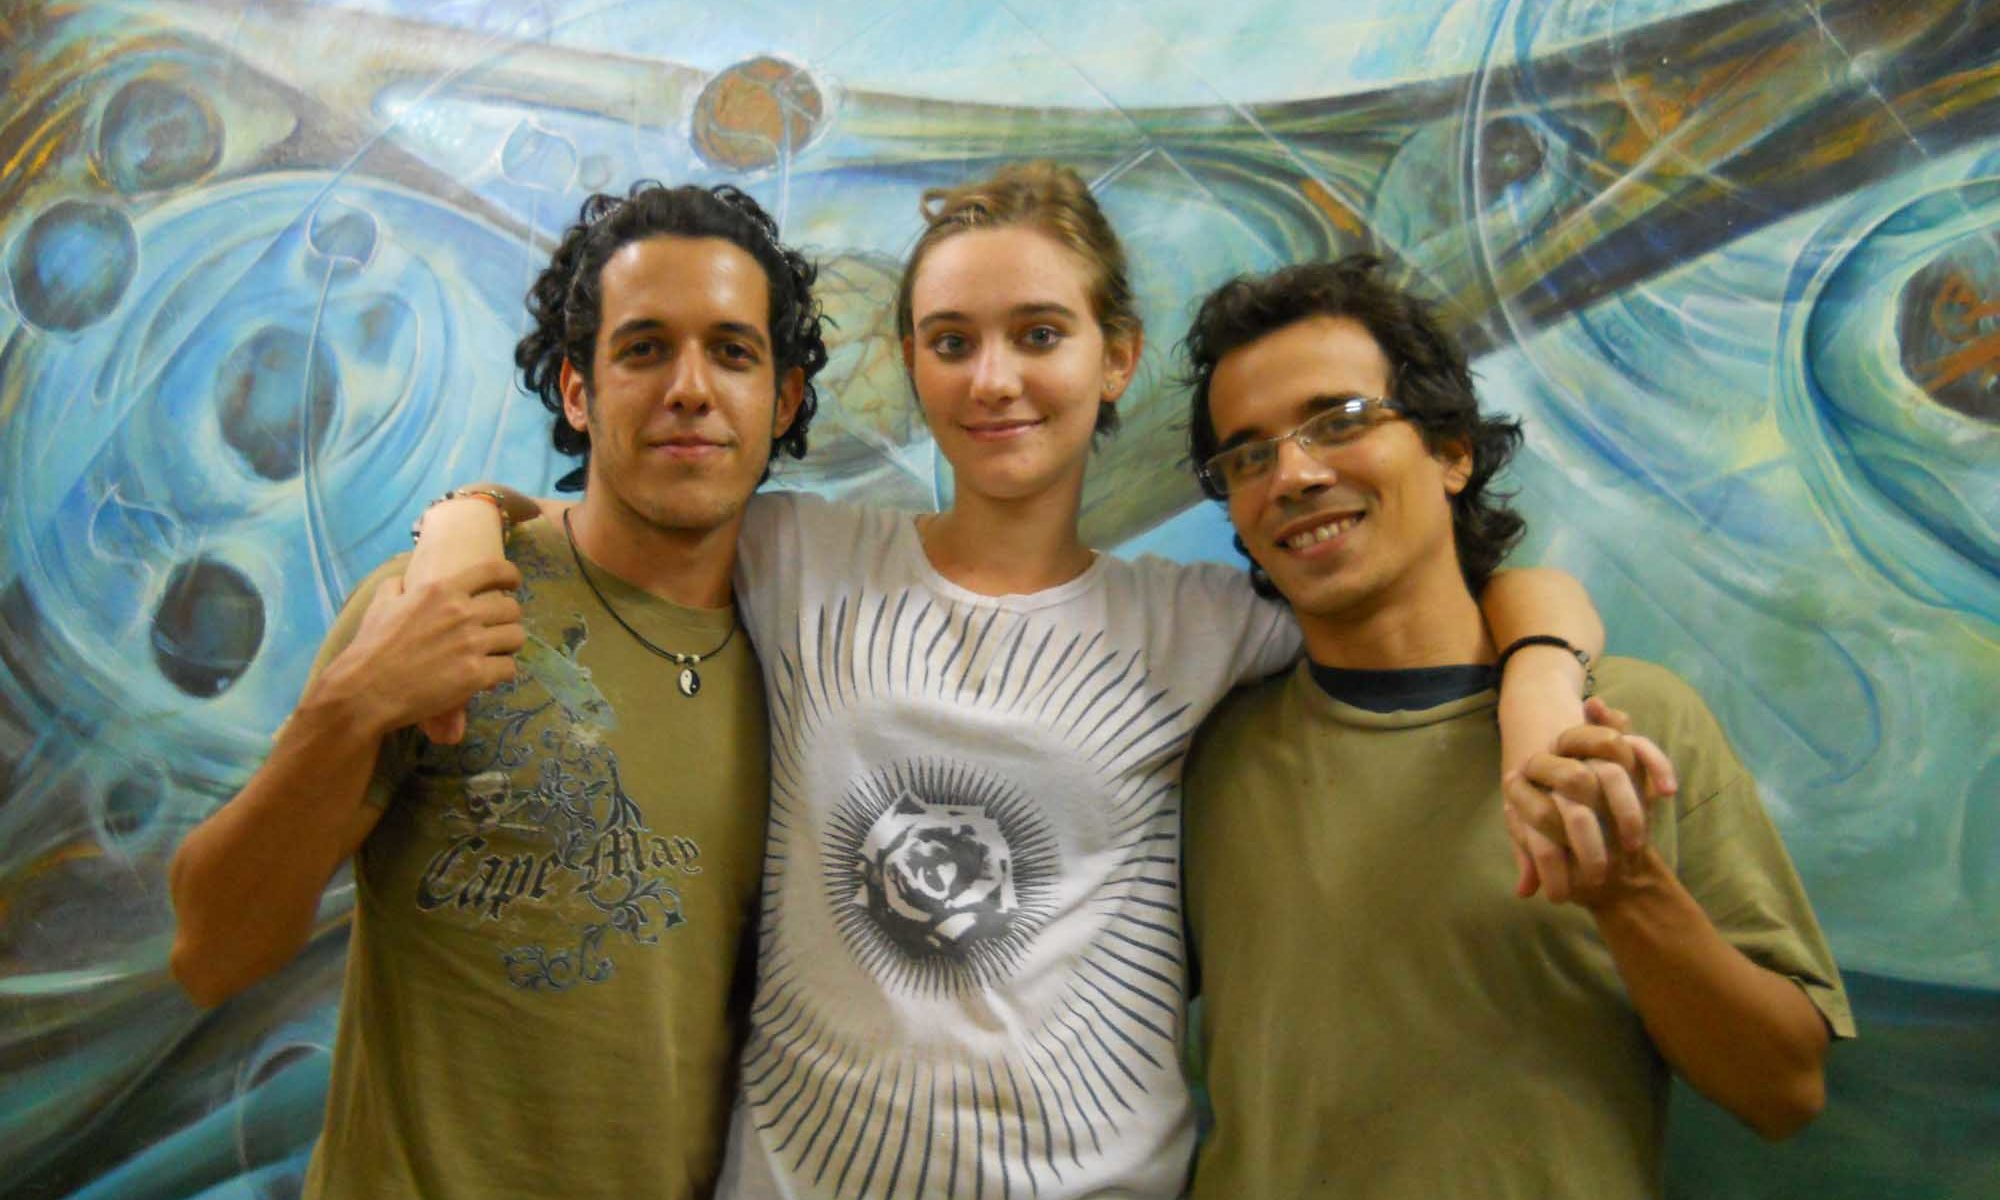 From left to right: John Cambra, Camila Ramirez, Dashel Hernandez. February 2014. Camaguey, Cuba